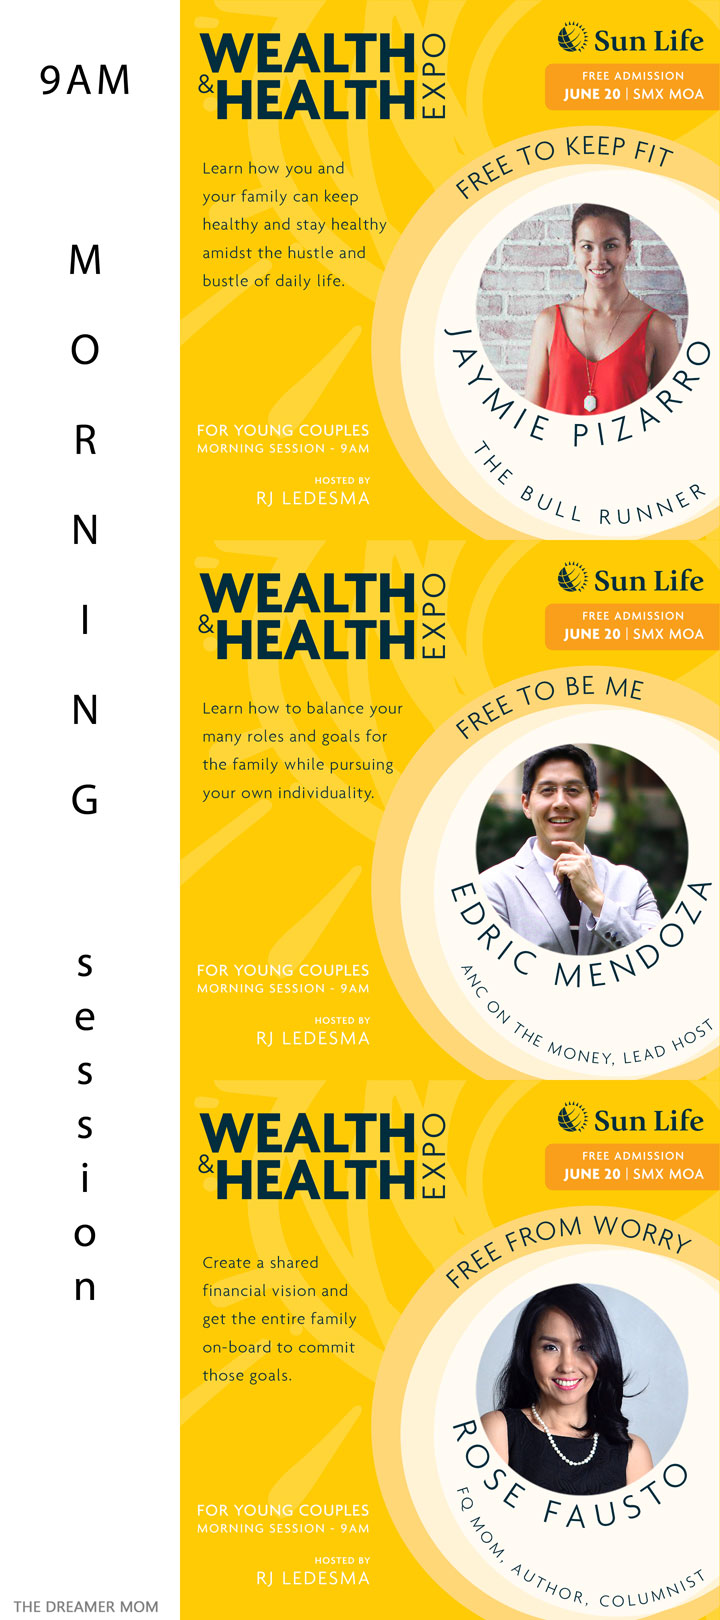 wealth-and-health-expo-by-sunlife-morning-session-9am